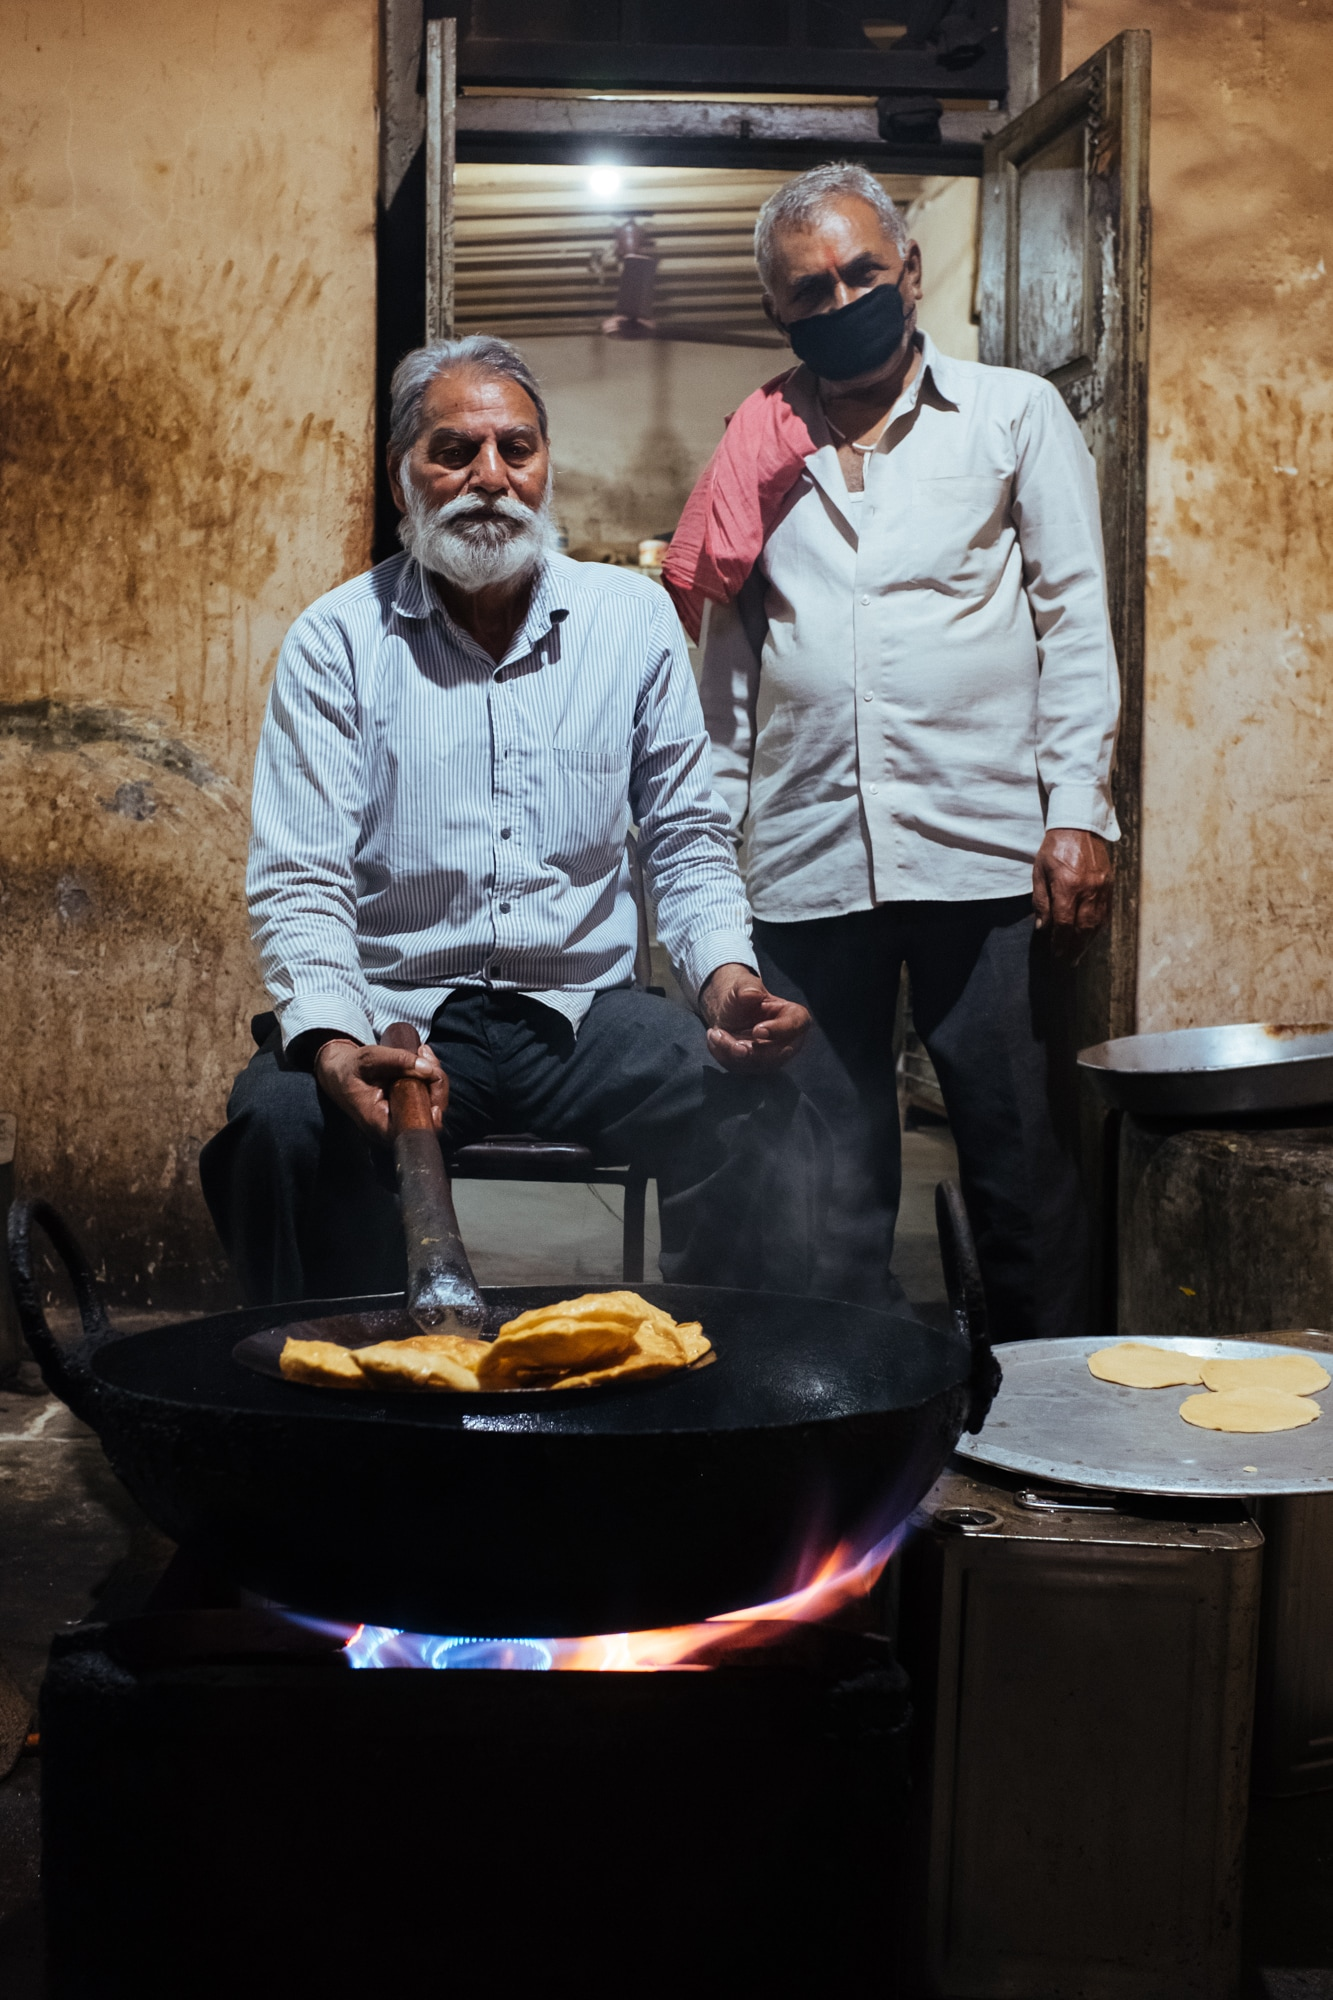 A man at Jalaram Temple in Ahmedabad fries puris as 'maharaj' or the head chef observes.